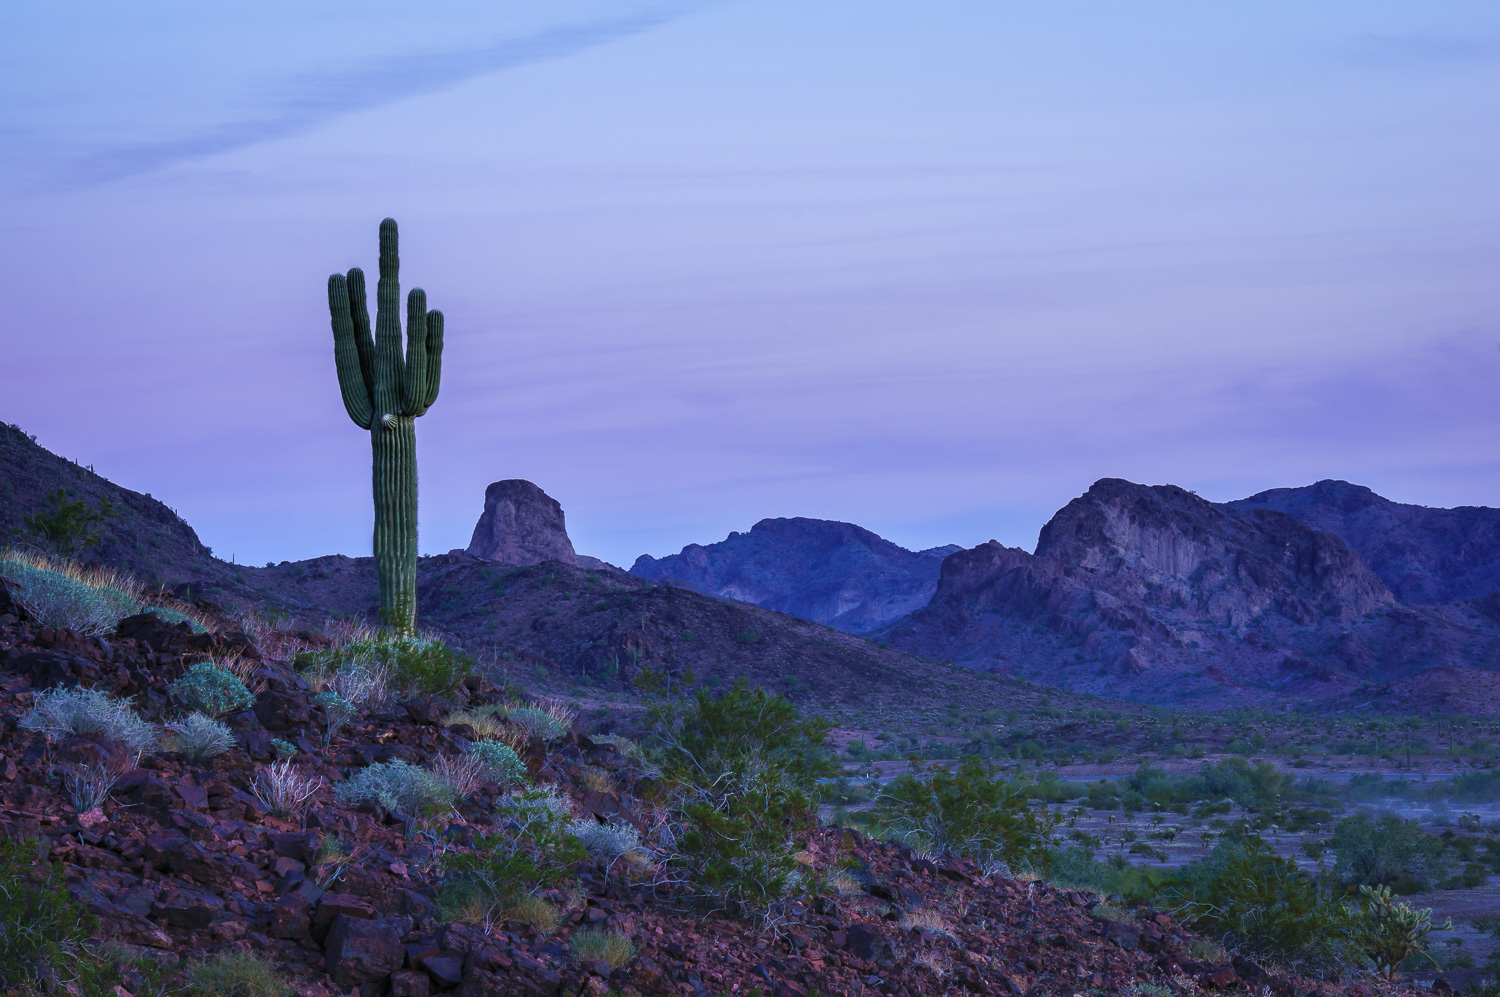 Saguaro Cactus by Anne McKinnell - Beginner's Guide to Natural Light in Landscape Photography